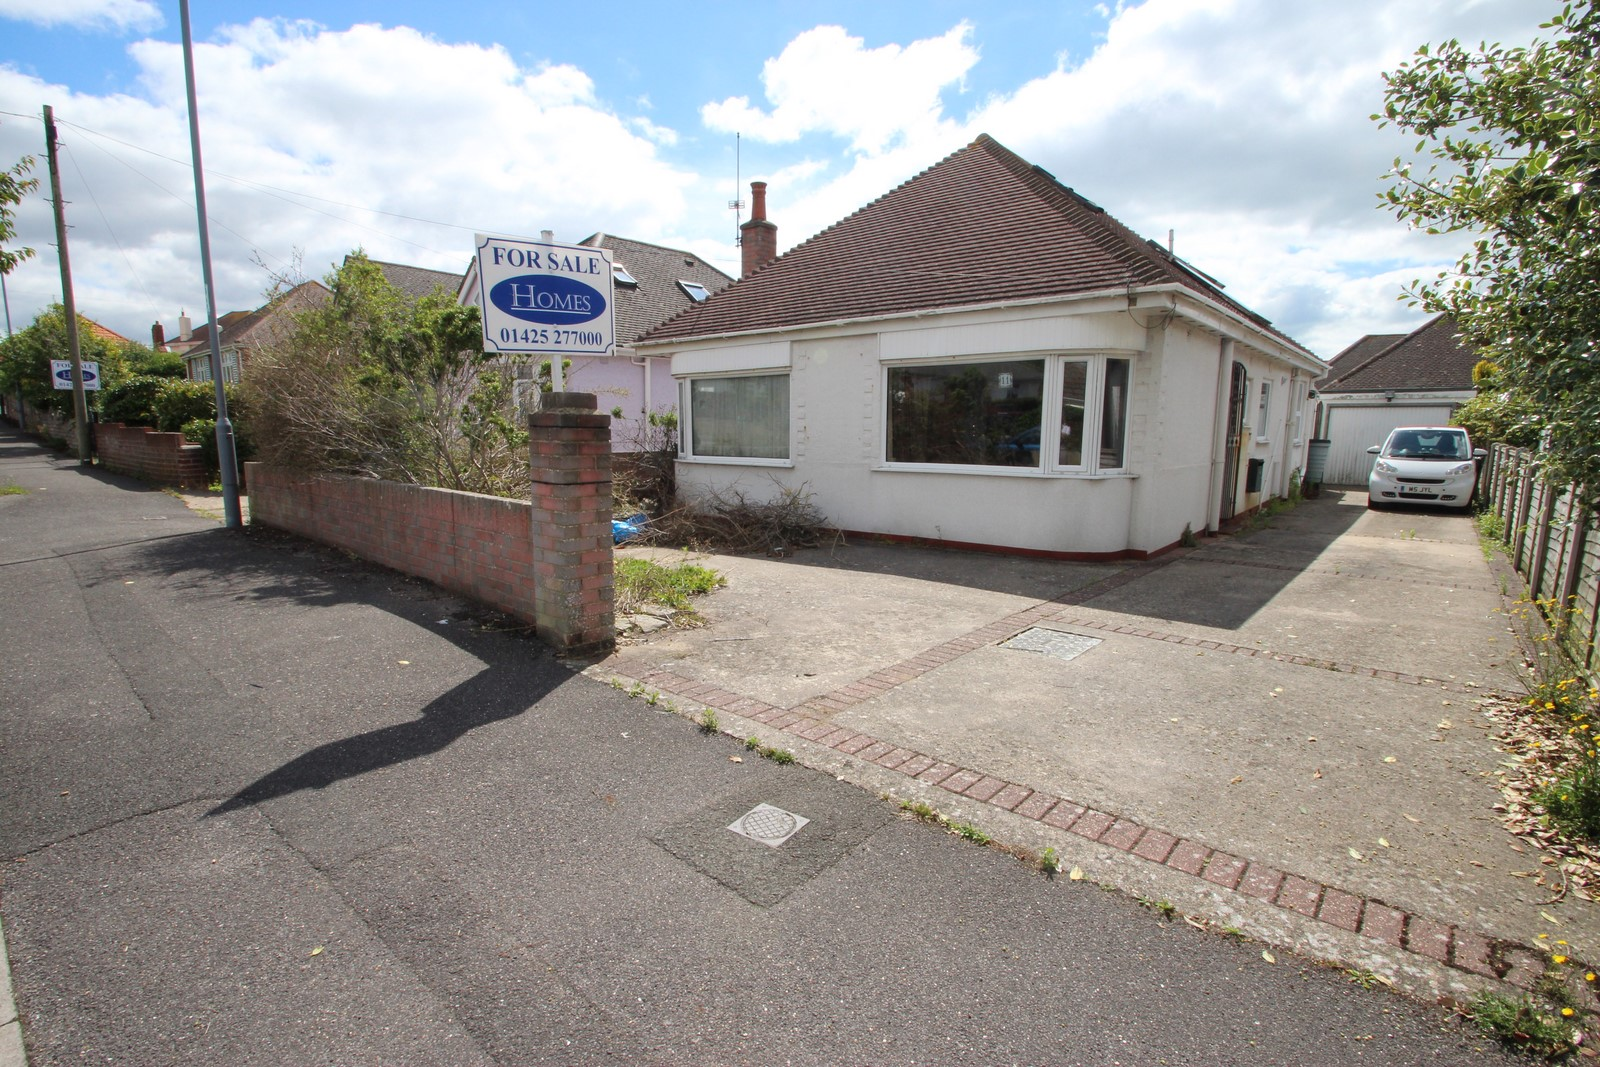 4 Bedroom Bungalow in Mudeford